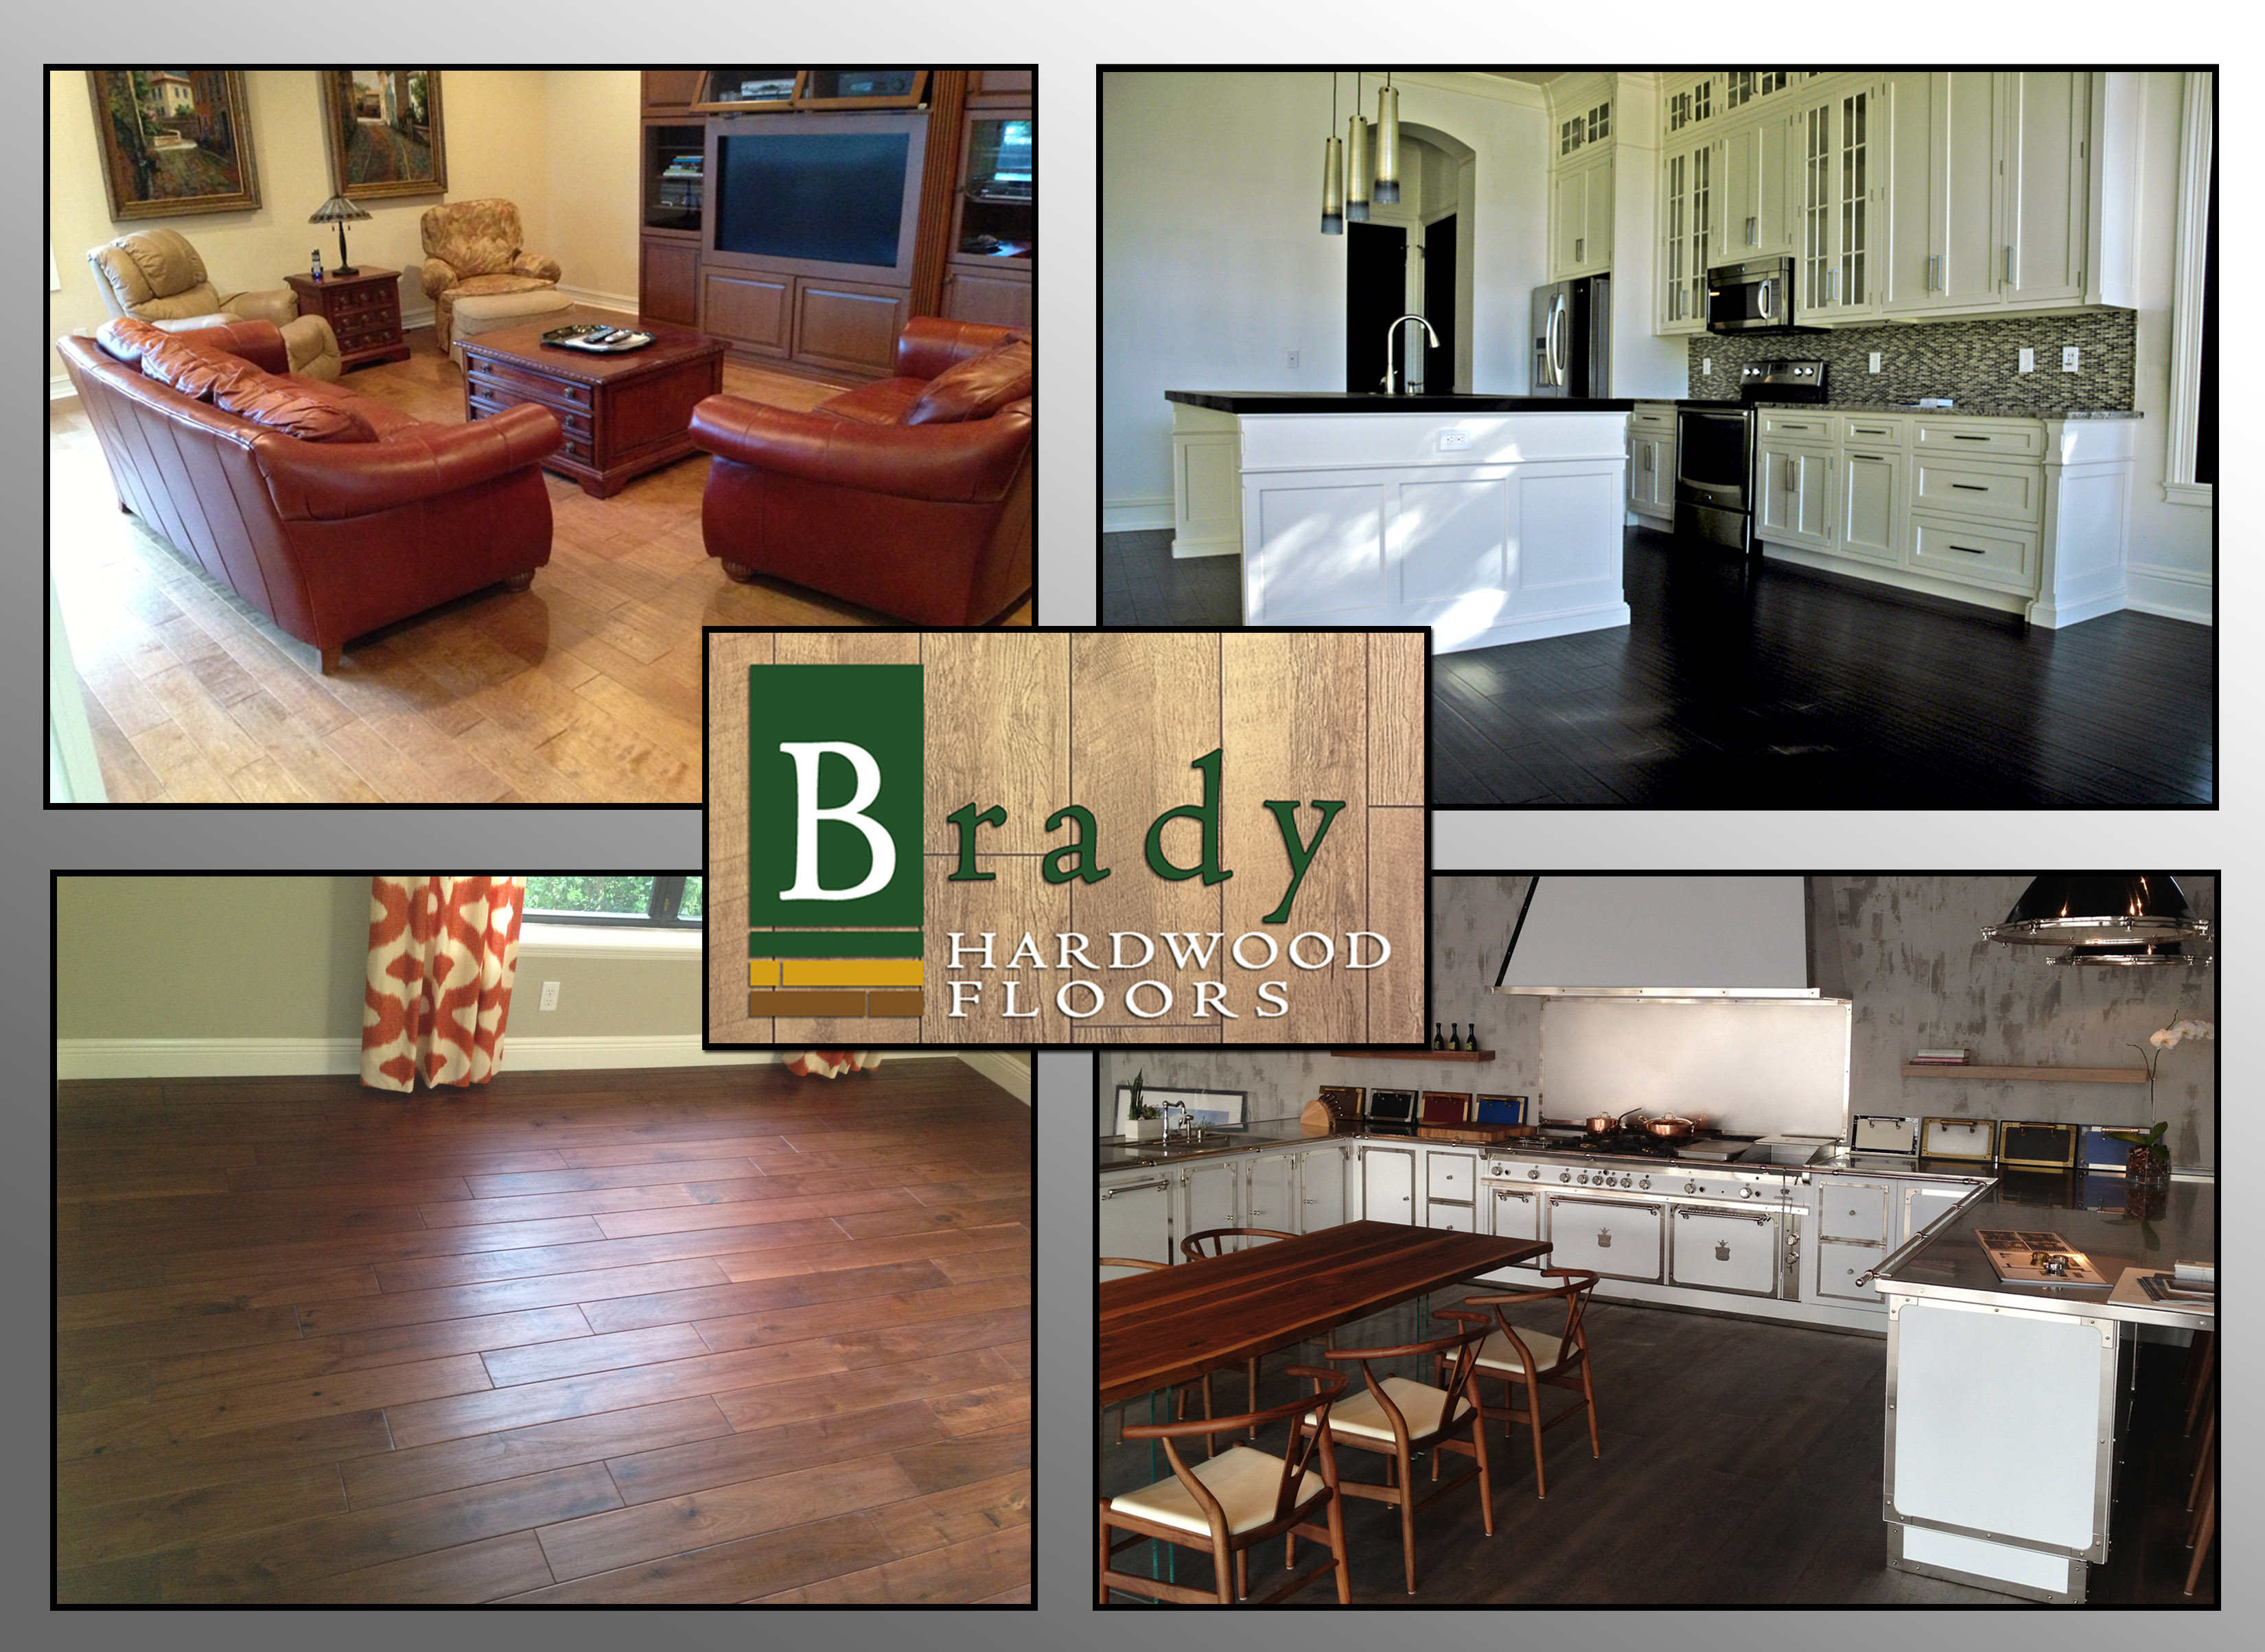 Brady Hardwood Floors Serving Southwest Florida